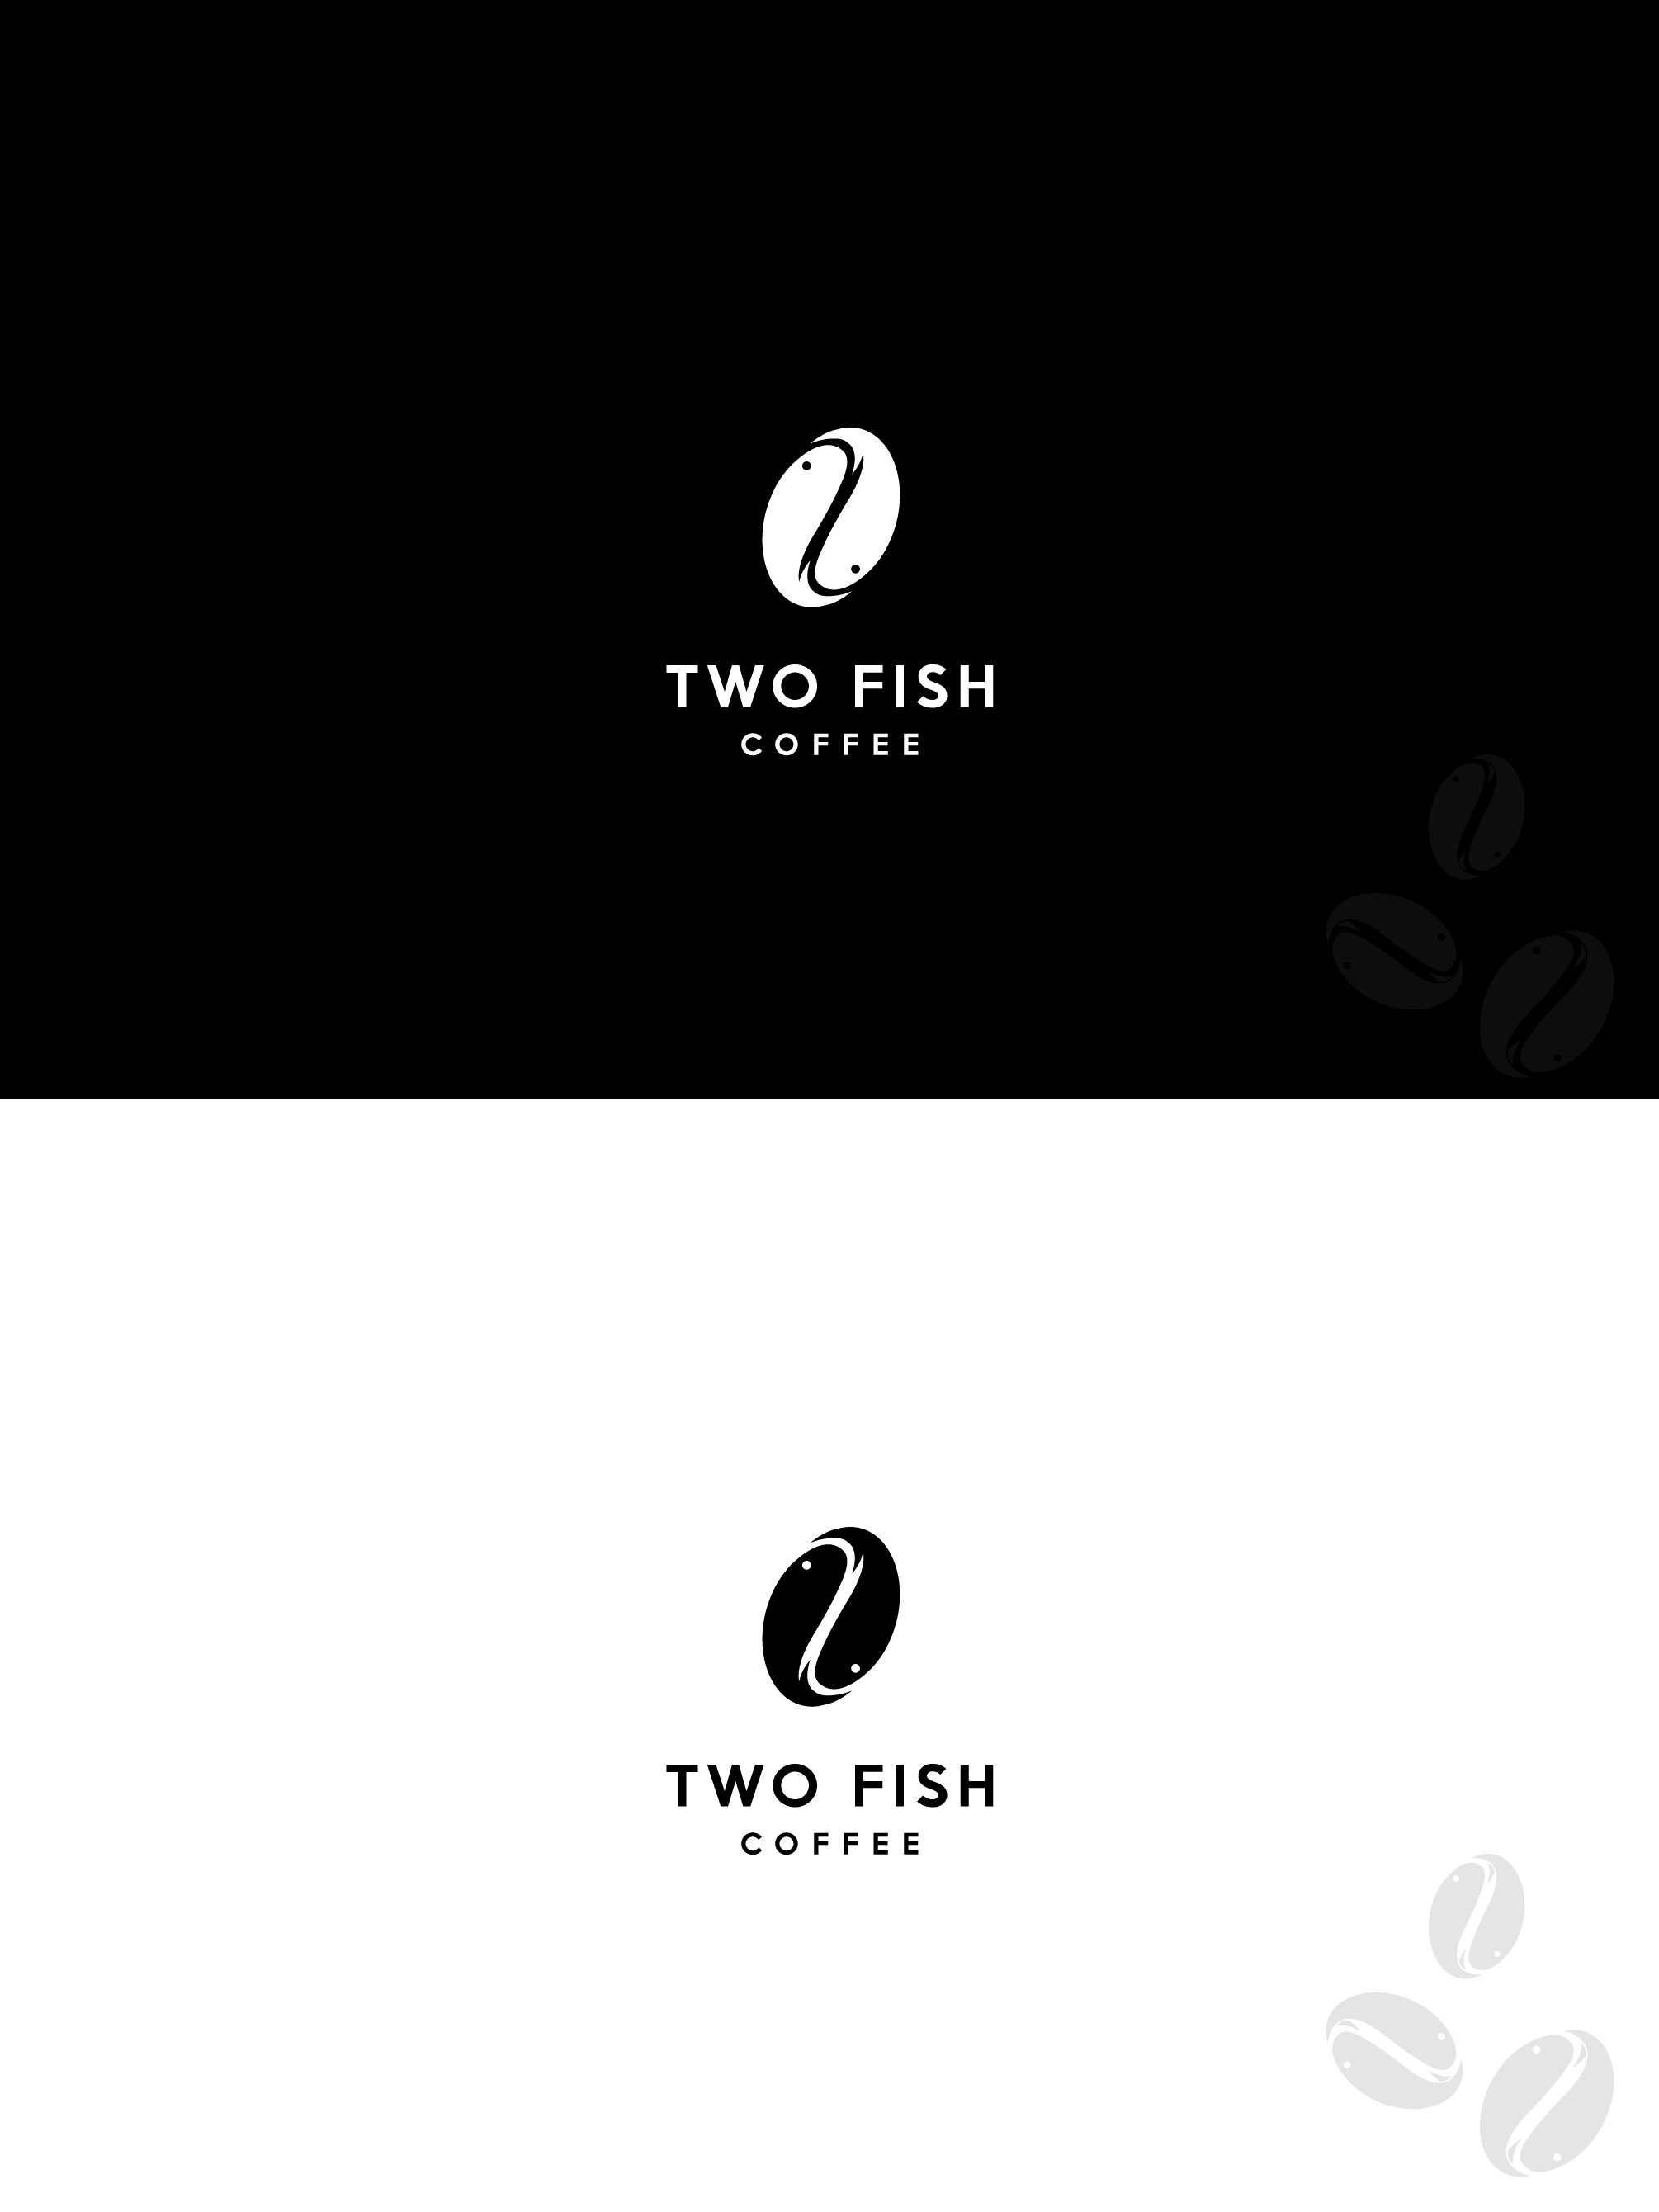 Create a design that marries two fish with a specialty coffee roasting business